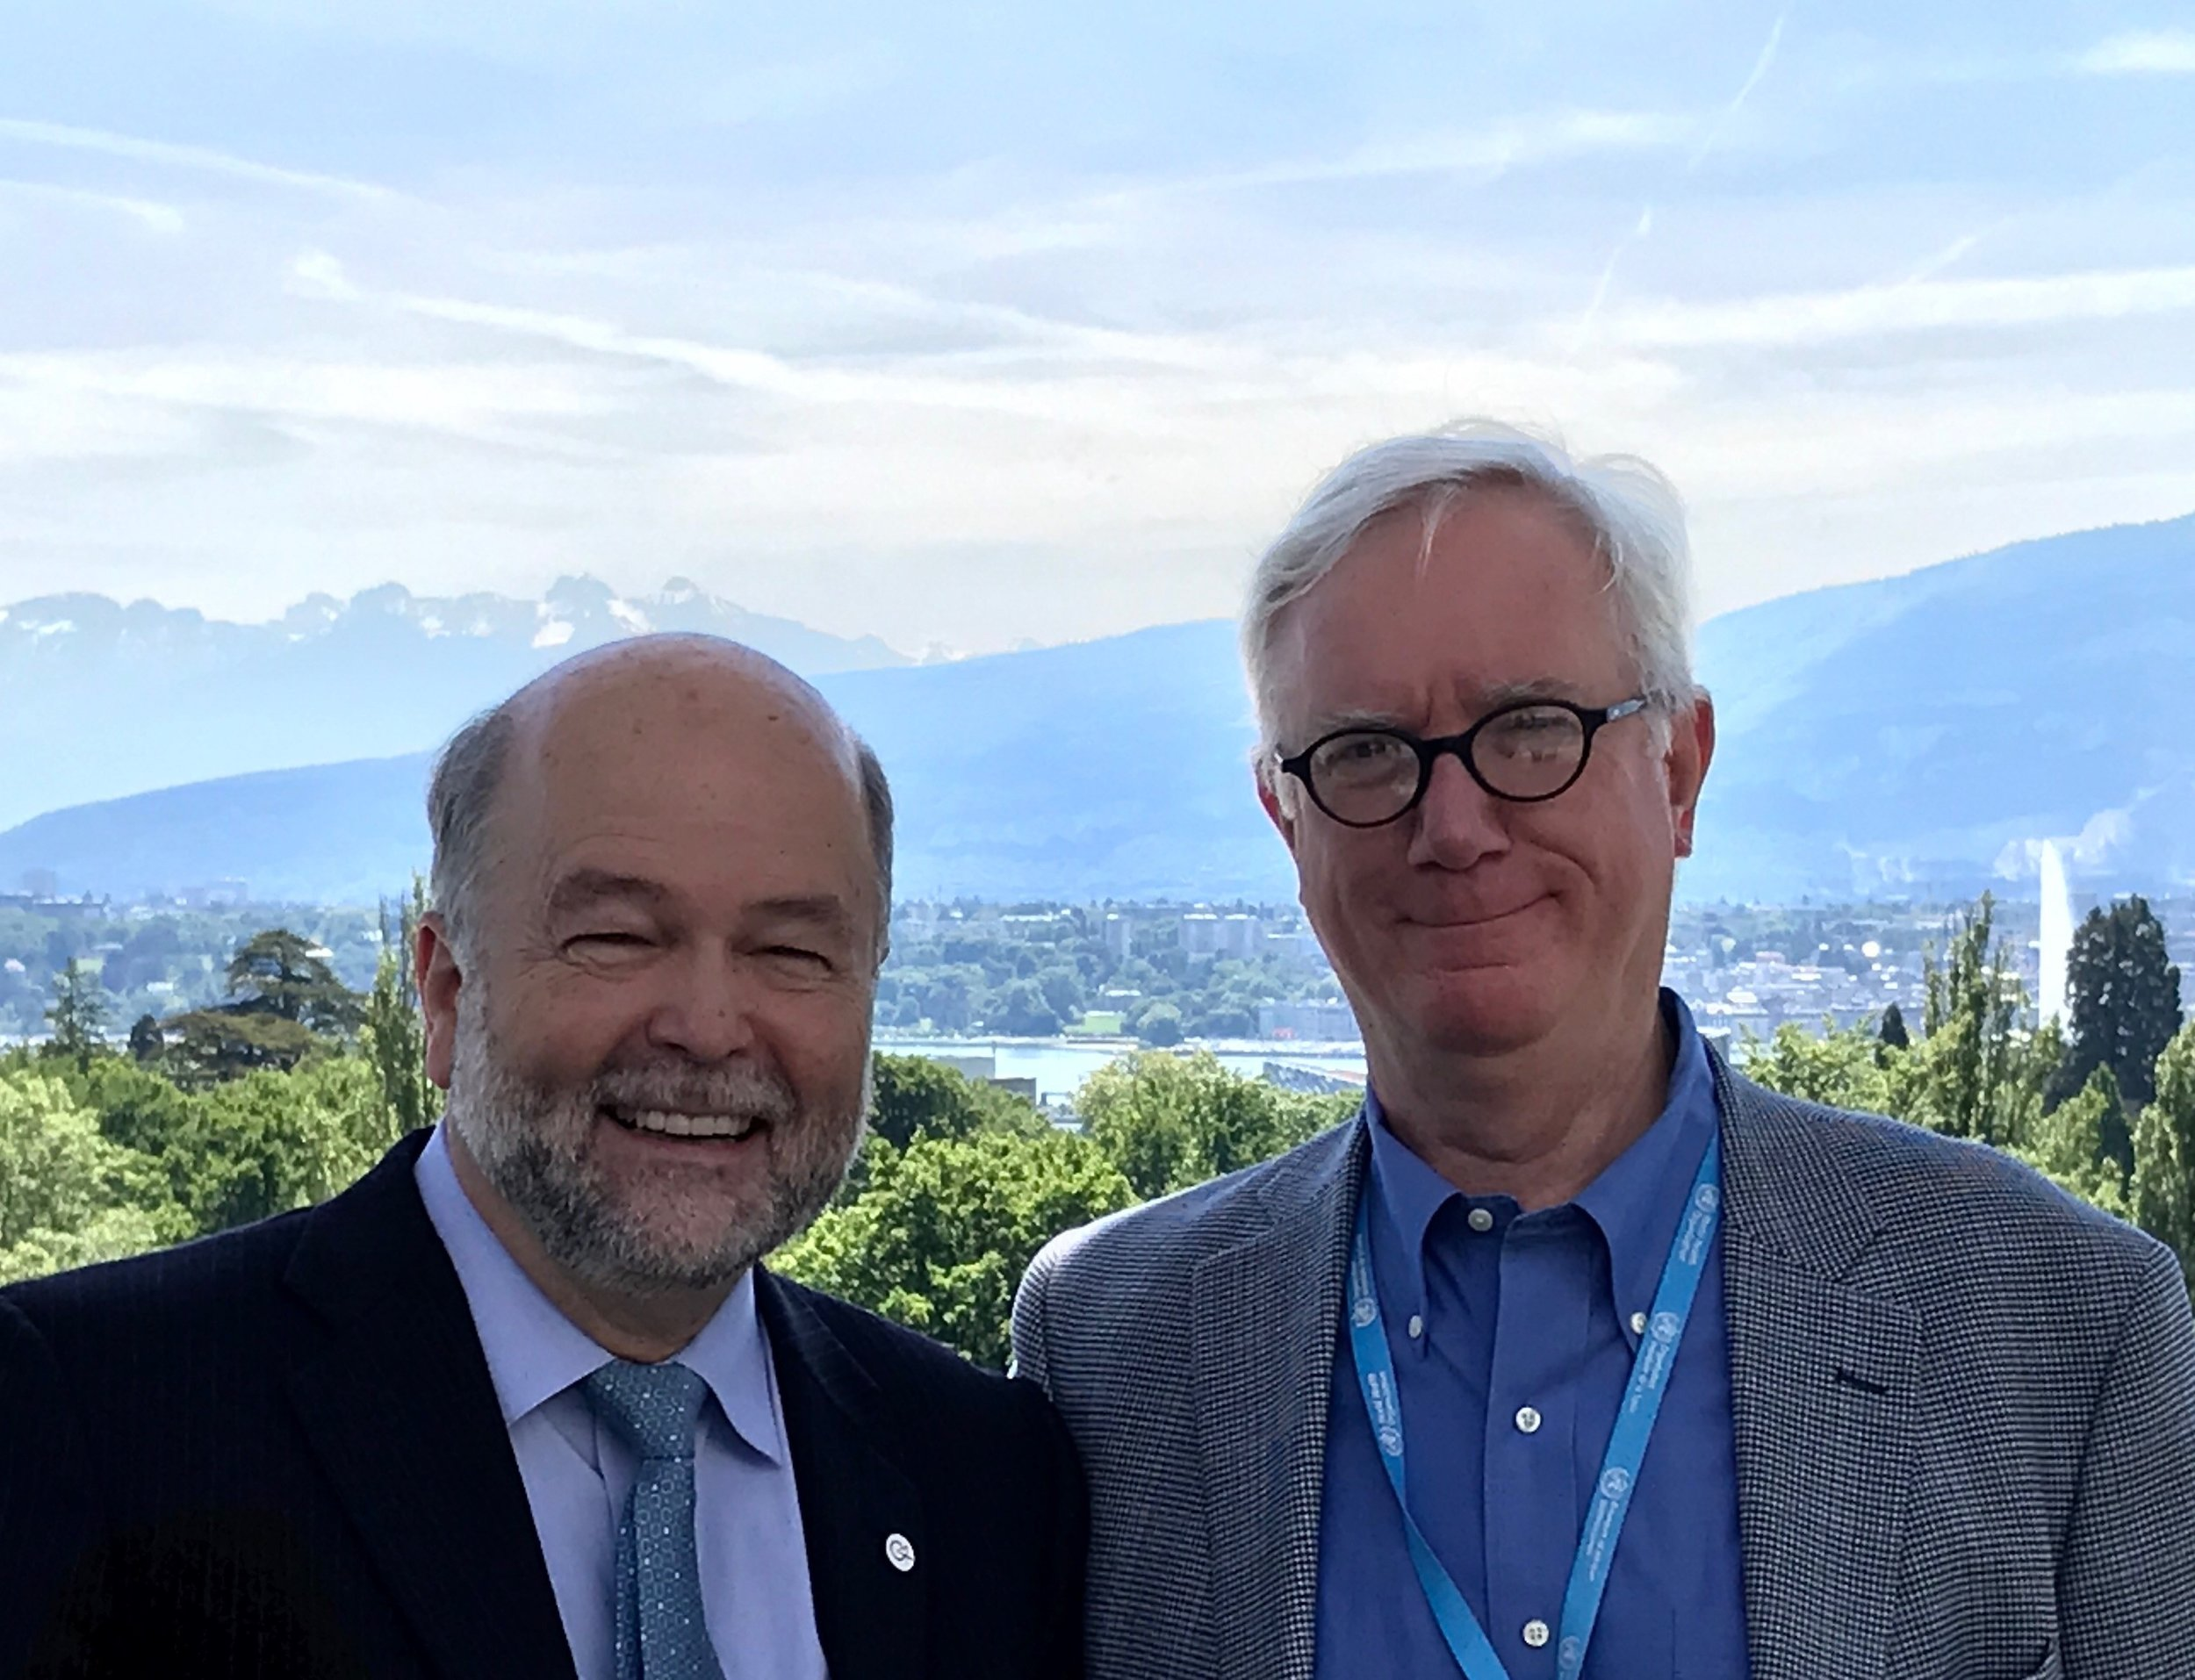 Dr. Moser (left) is pictured here with Dr. Walt Johnson, Director of the WHO Global Program on Essential and Emergent Surgical Care, a former neurosurgeon and friend of Solidarity Bridge.